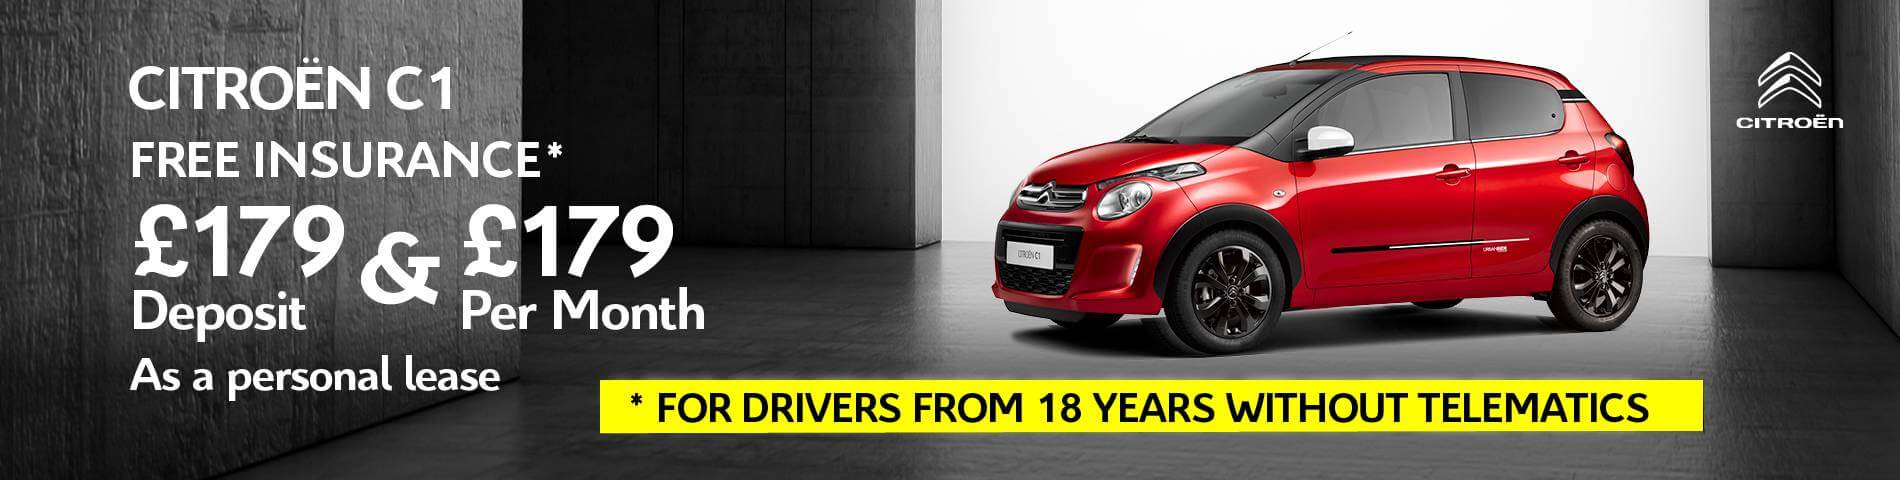 Citroen C1 Free Insurance For Drivers From 18 Years Without Telematics